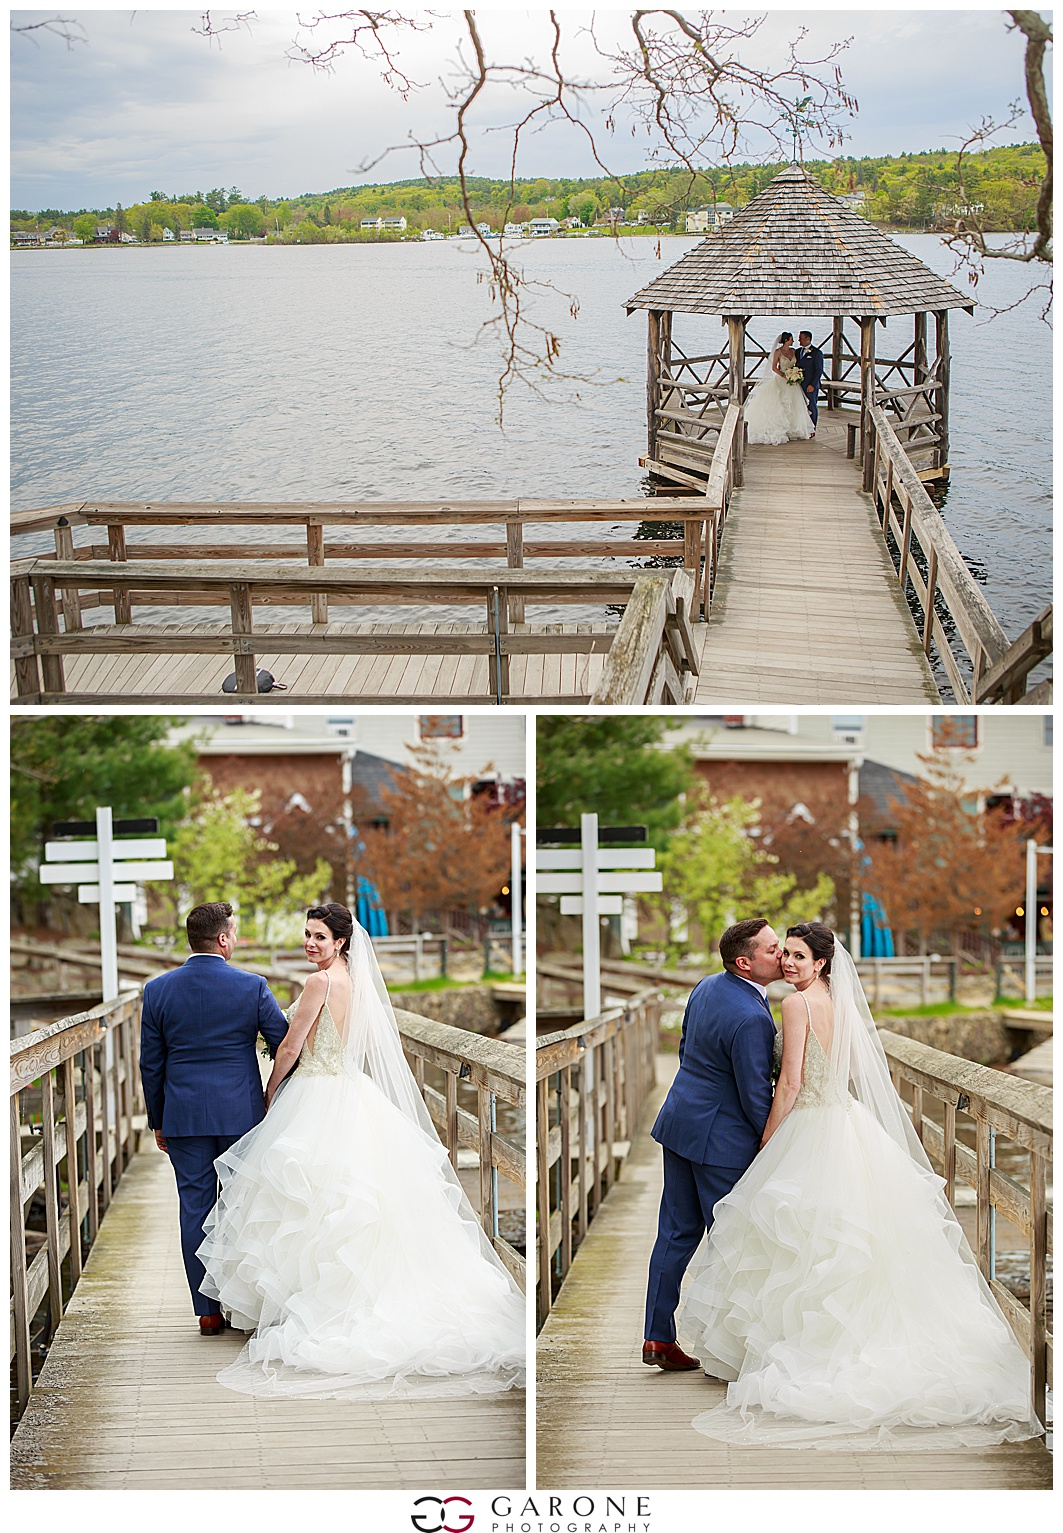 Shauna_Nathan_Carriage_House_Chuch_Landing_Lake_Winnapausakee_Wedding_0025.jpg